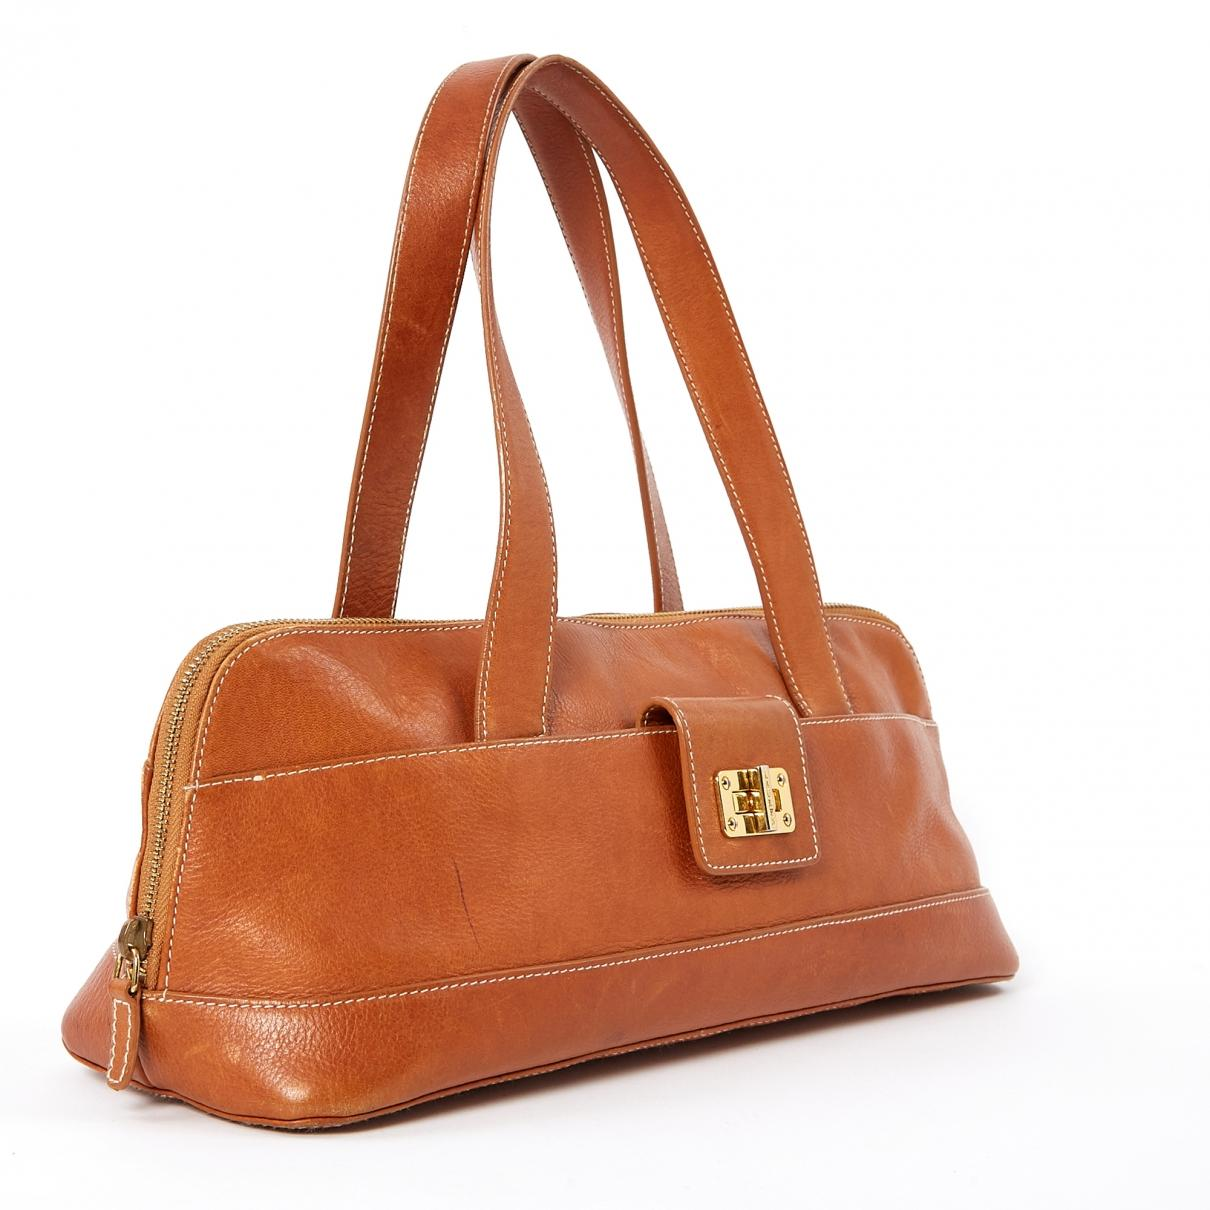 1812c0a9e6f0 Ralph Lauren Collection - Brown Leather Handbag - Lyst. View fullscreen